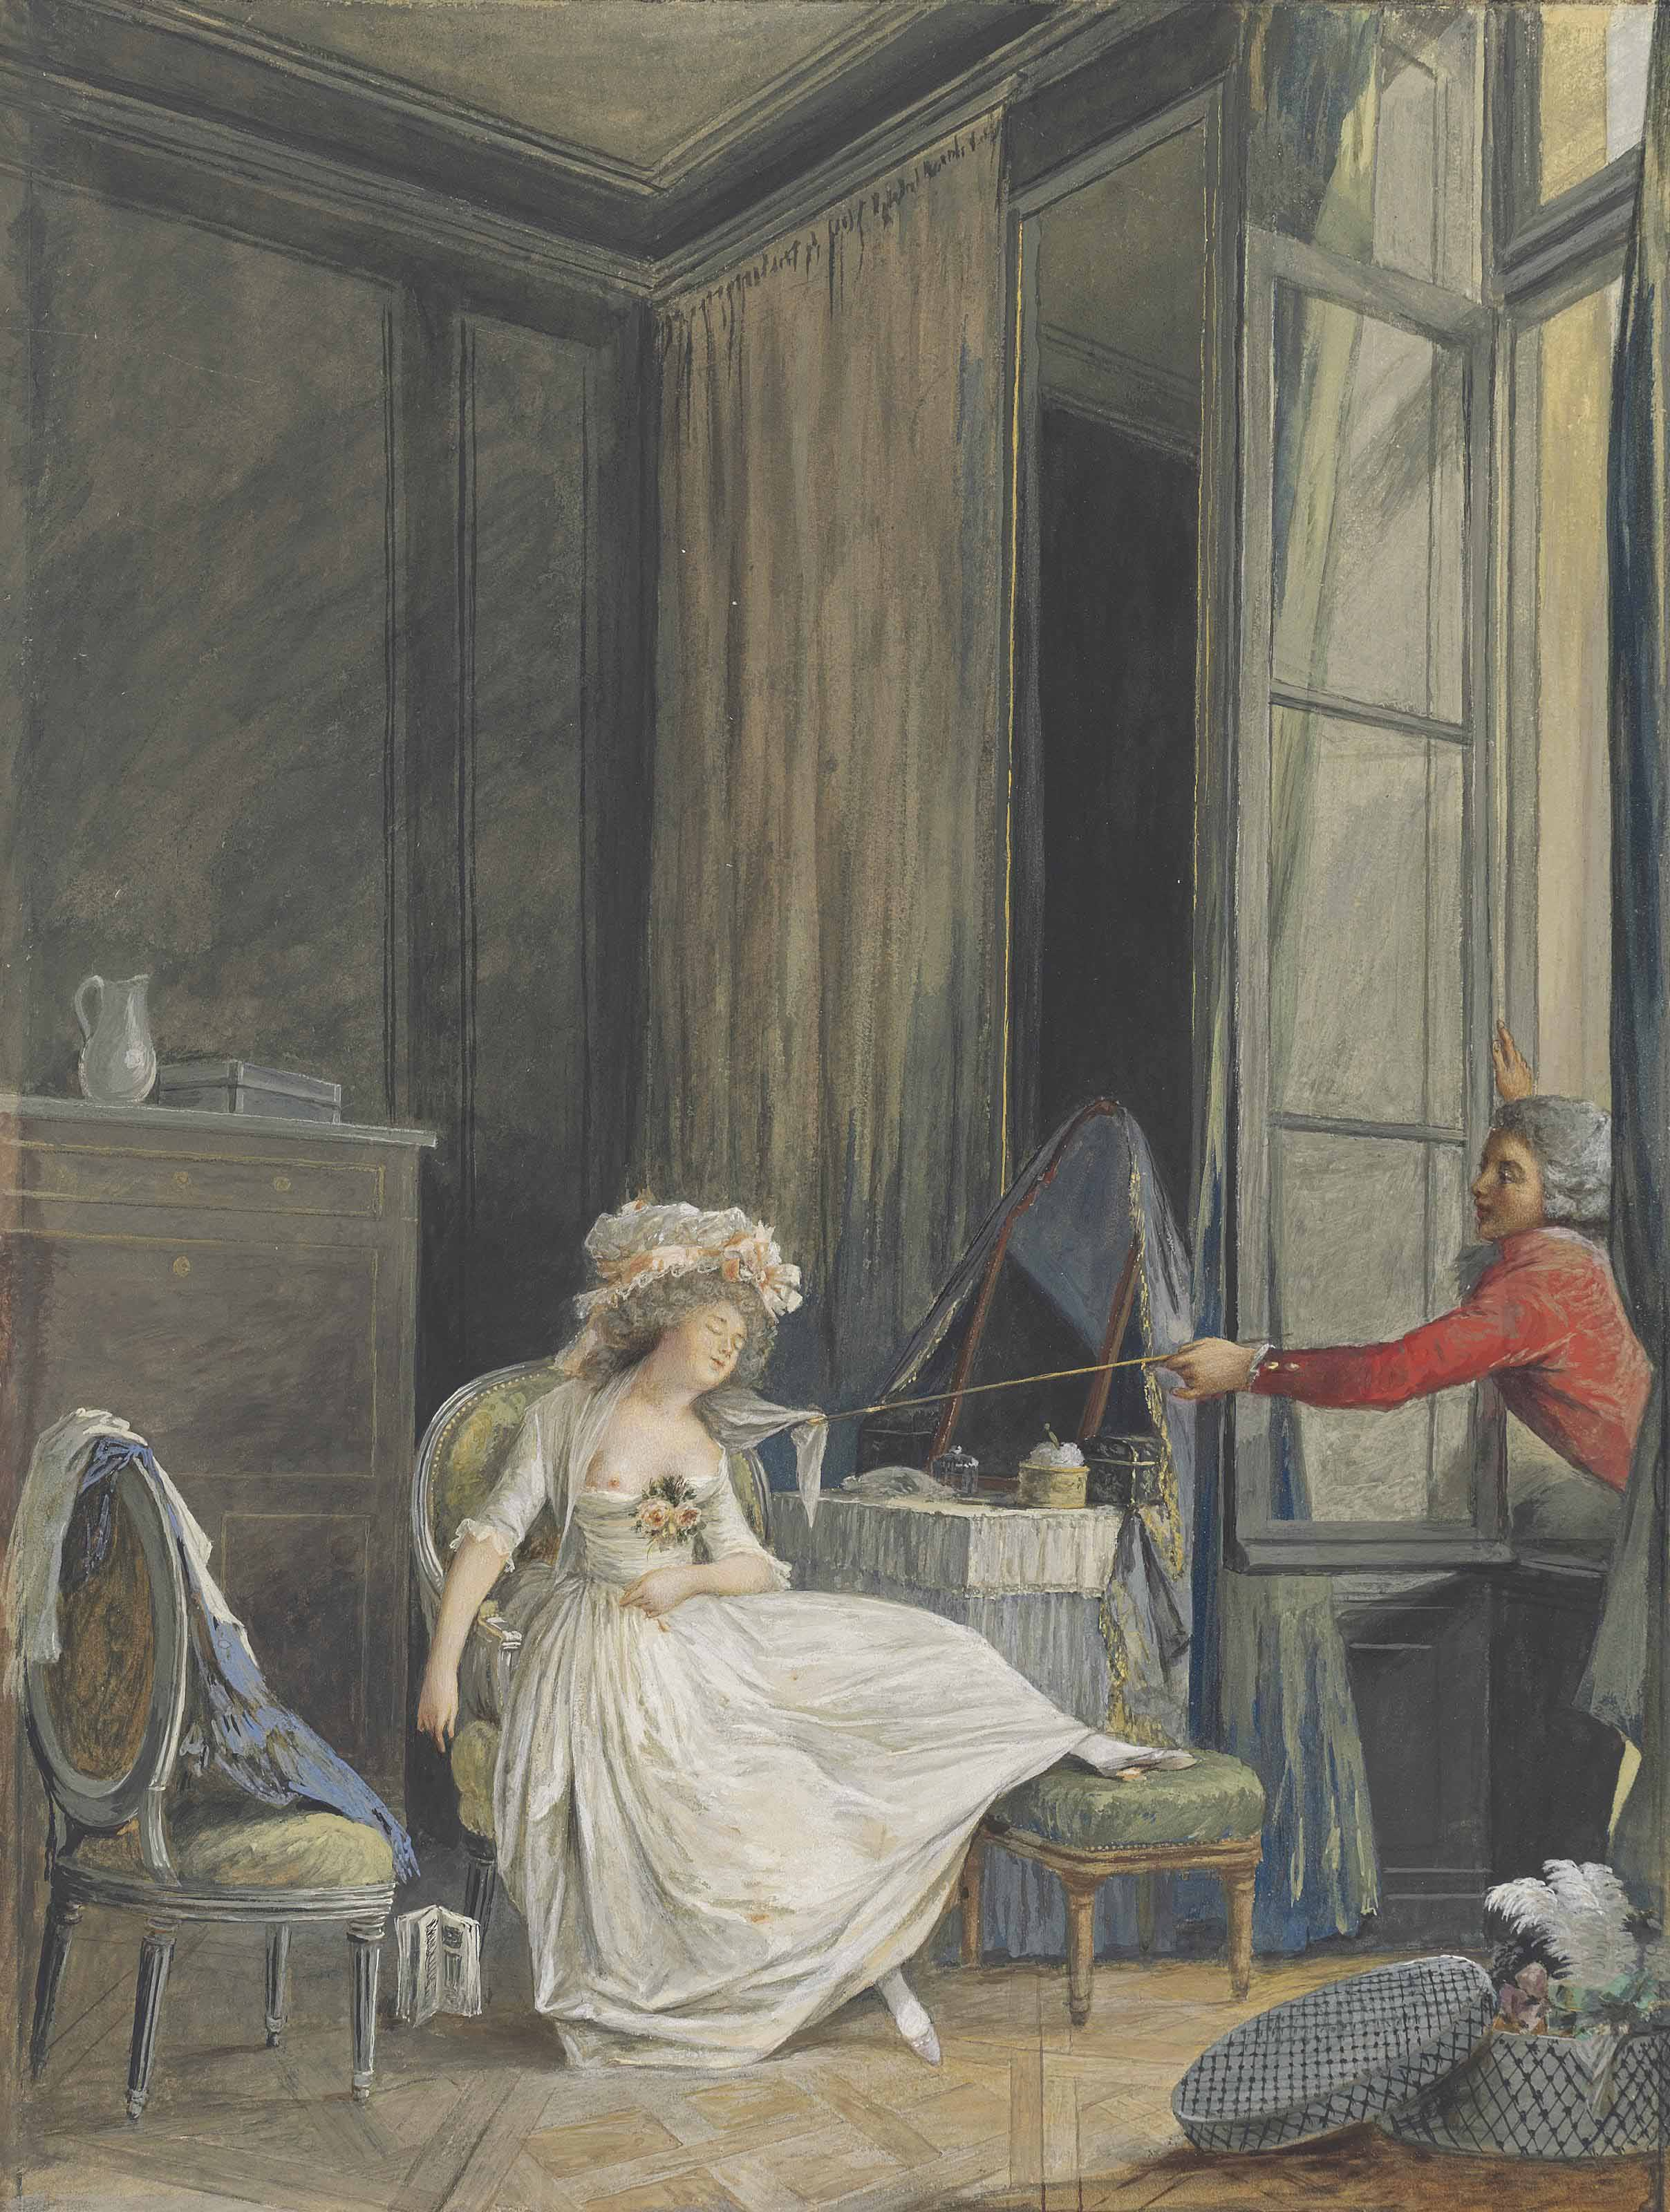 'L'amour frivole': A young man leaning through a window to lift the fichu of a sleeping girl